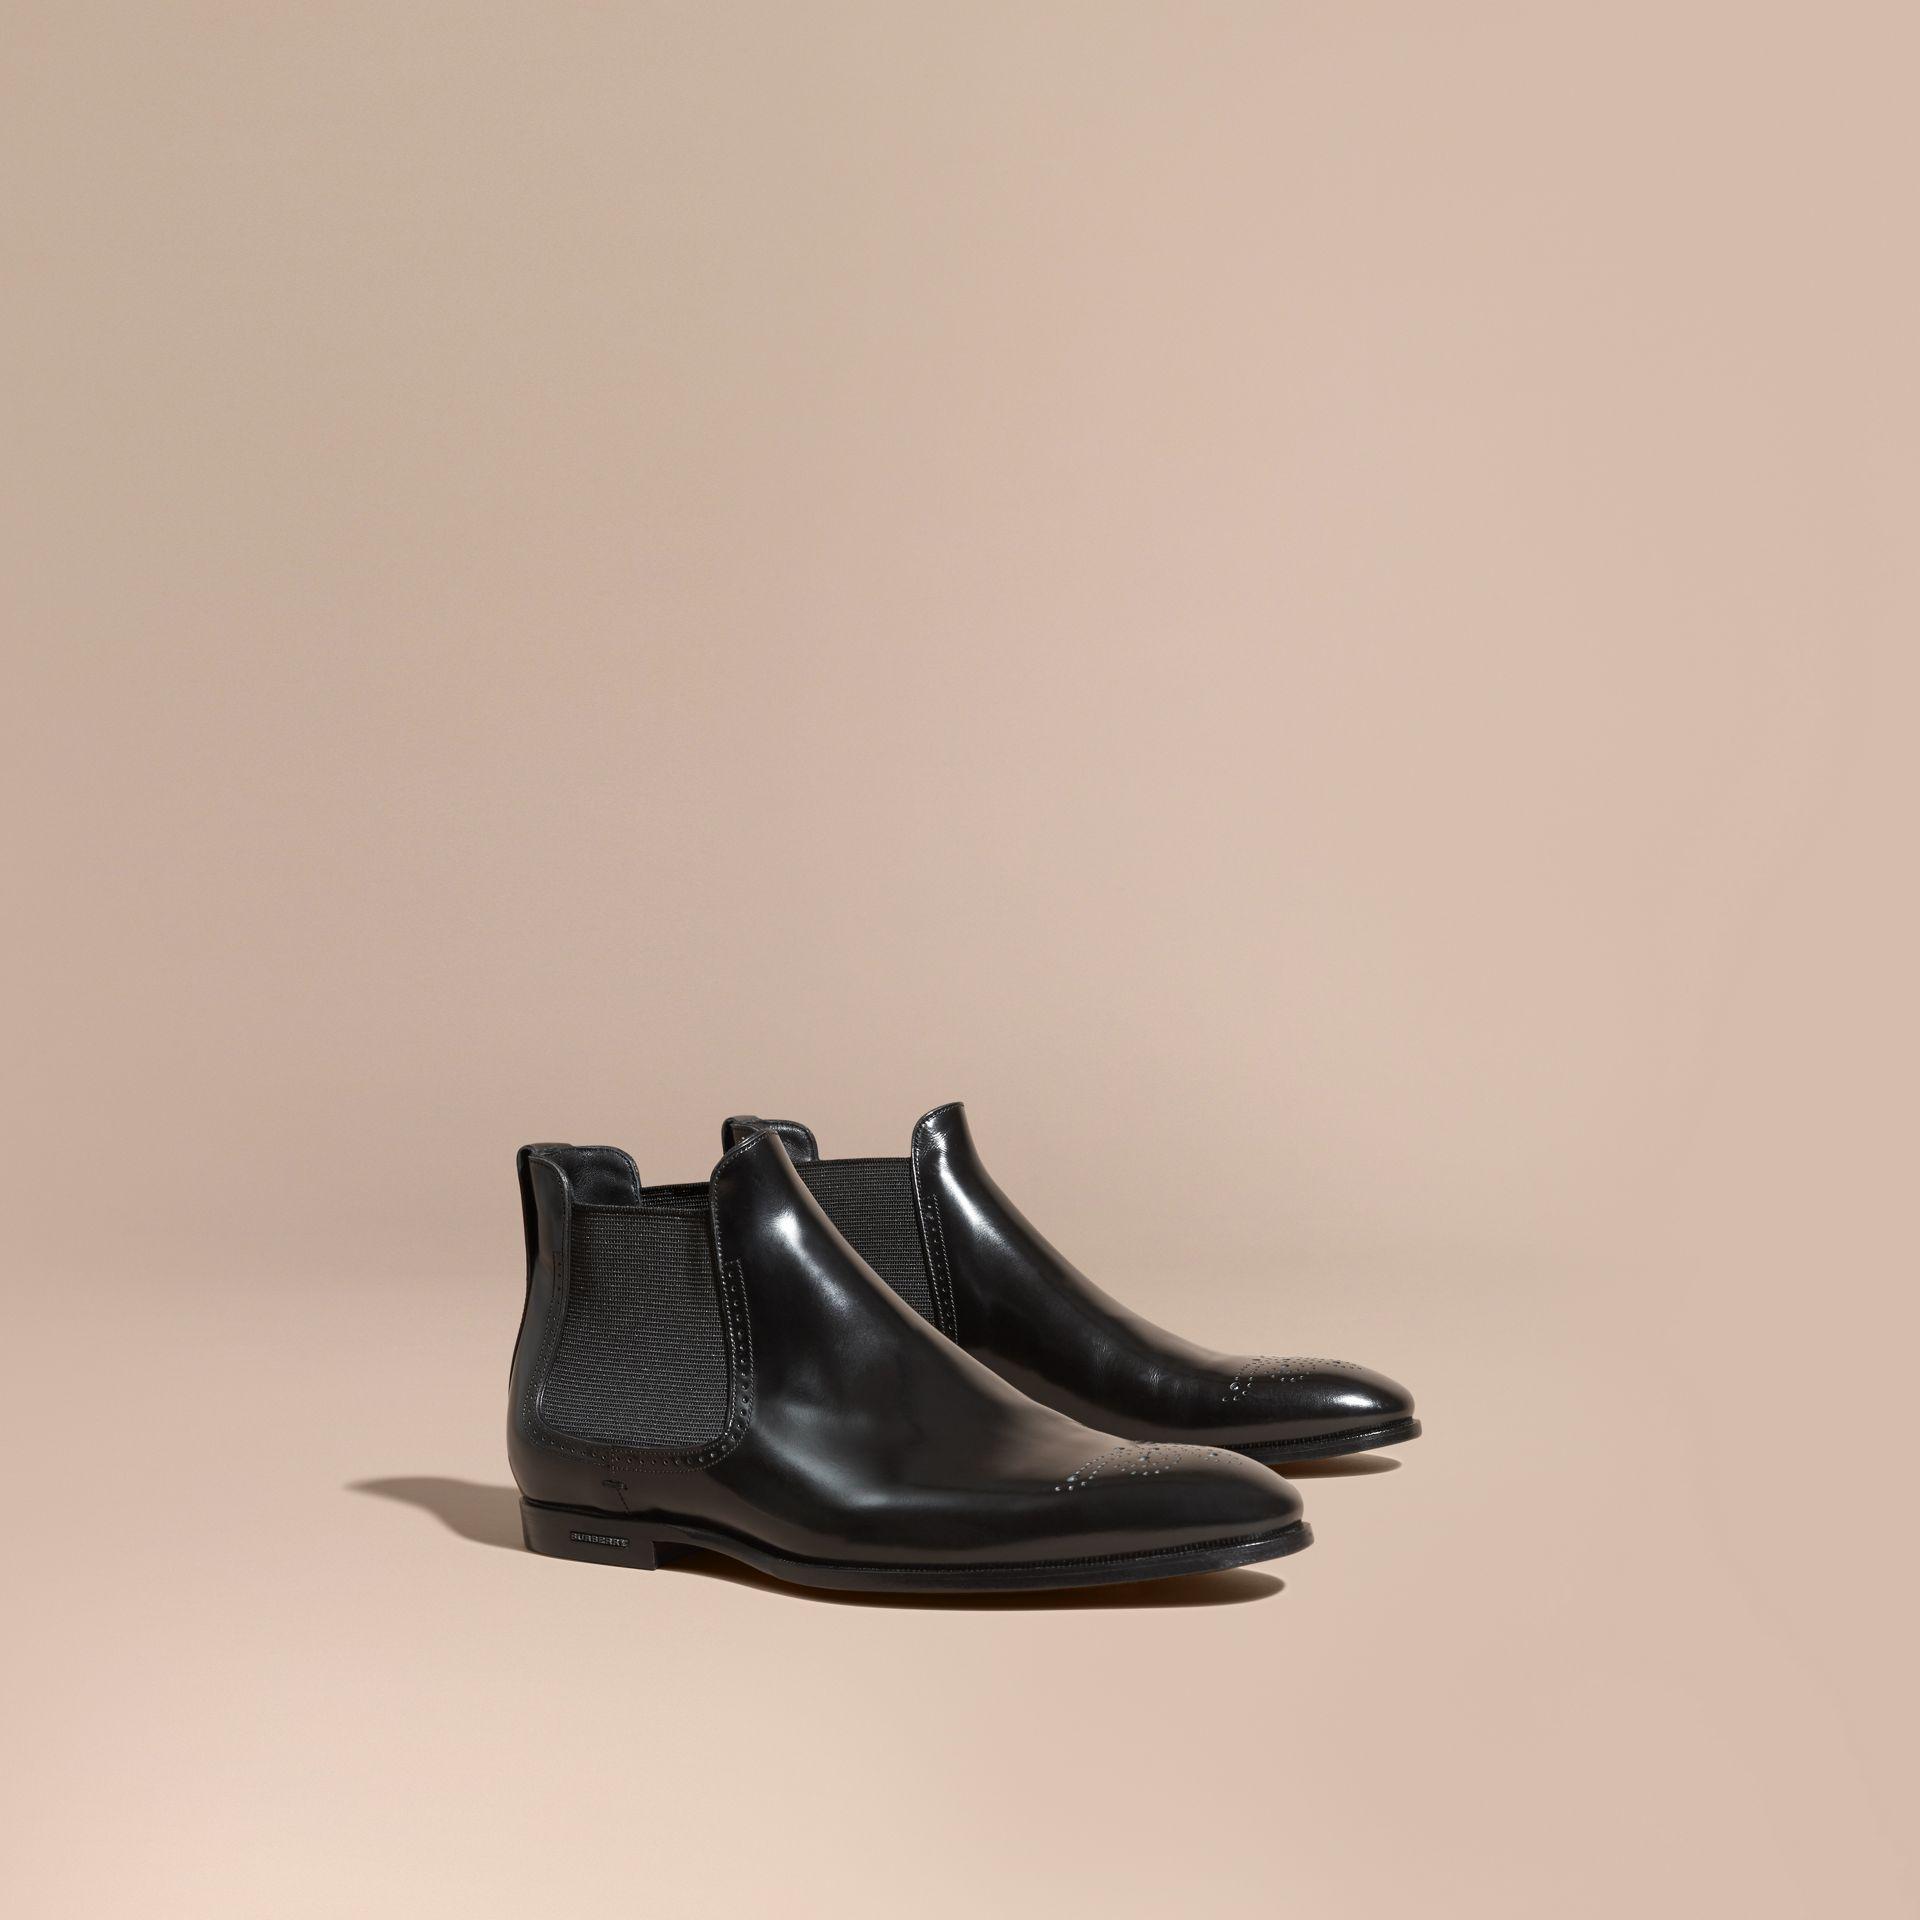 Black Perforated Detail Leather Chelsea Boots Black - gallery image 1